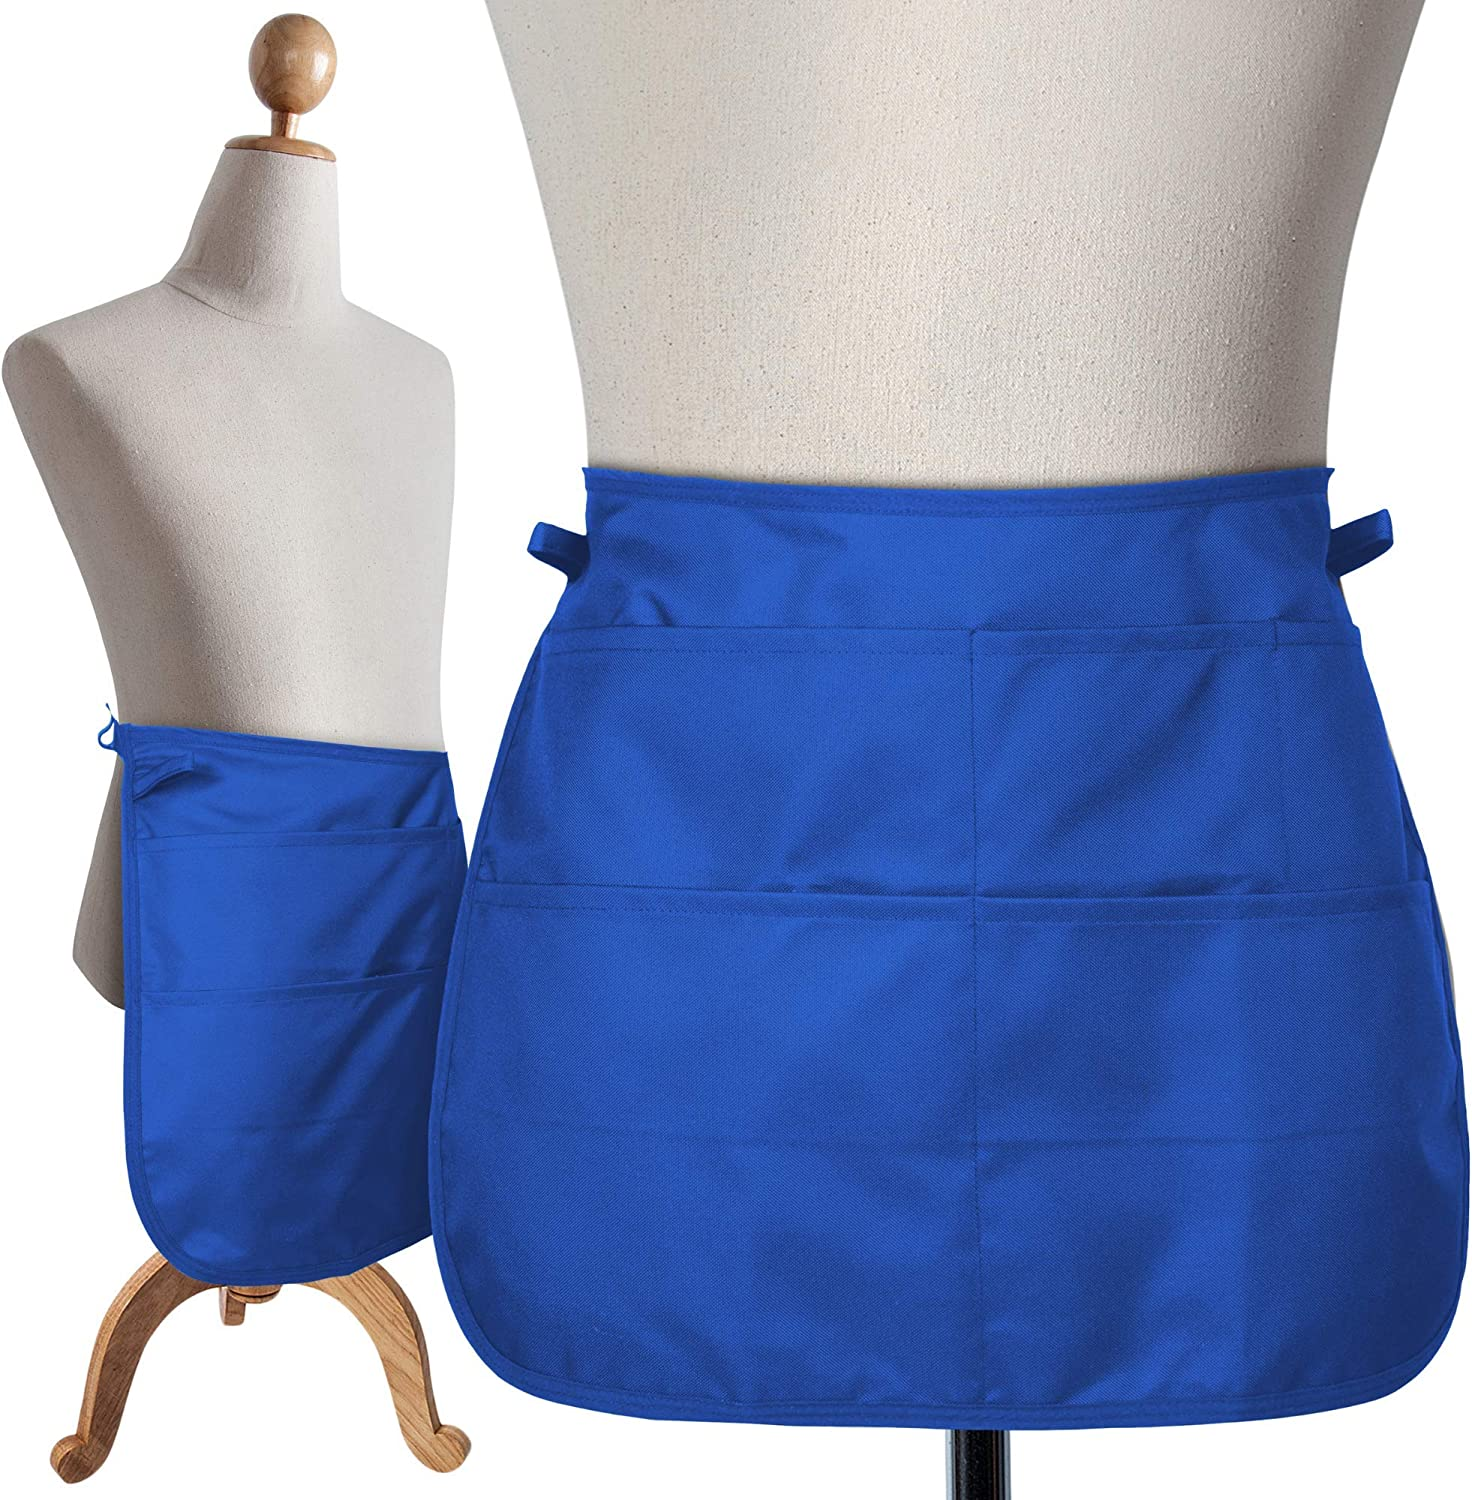 "SupplyMaid Professional Cleaning Apron, Used by 1000s of House Cleaners, Hotels, Casinos and More.""Like a Cleaning Caddy Around Your Waist"" - Speeds Up Cleaning, Saves Time & Money"